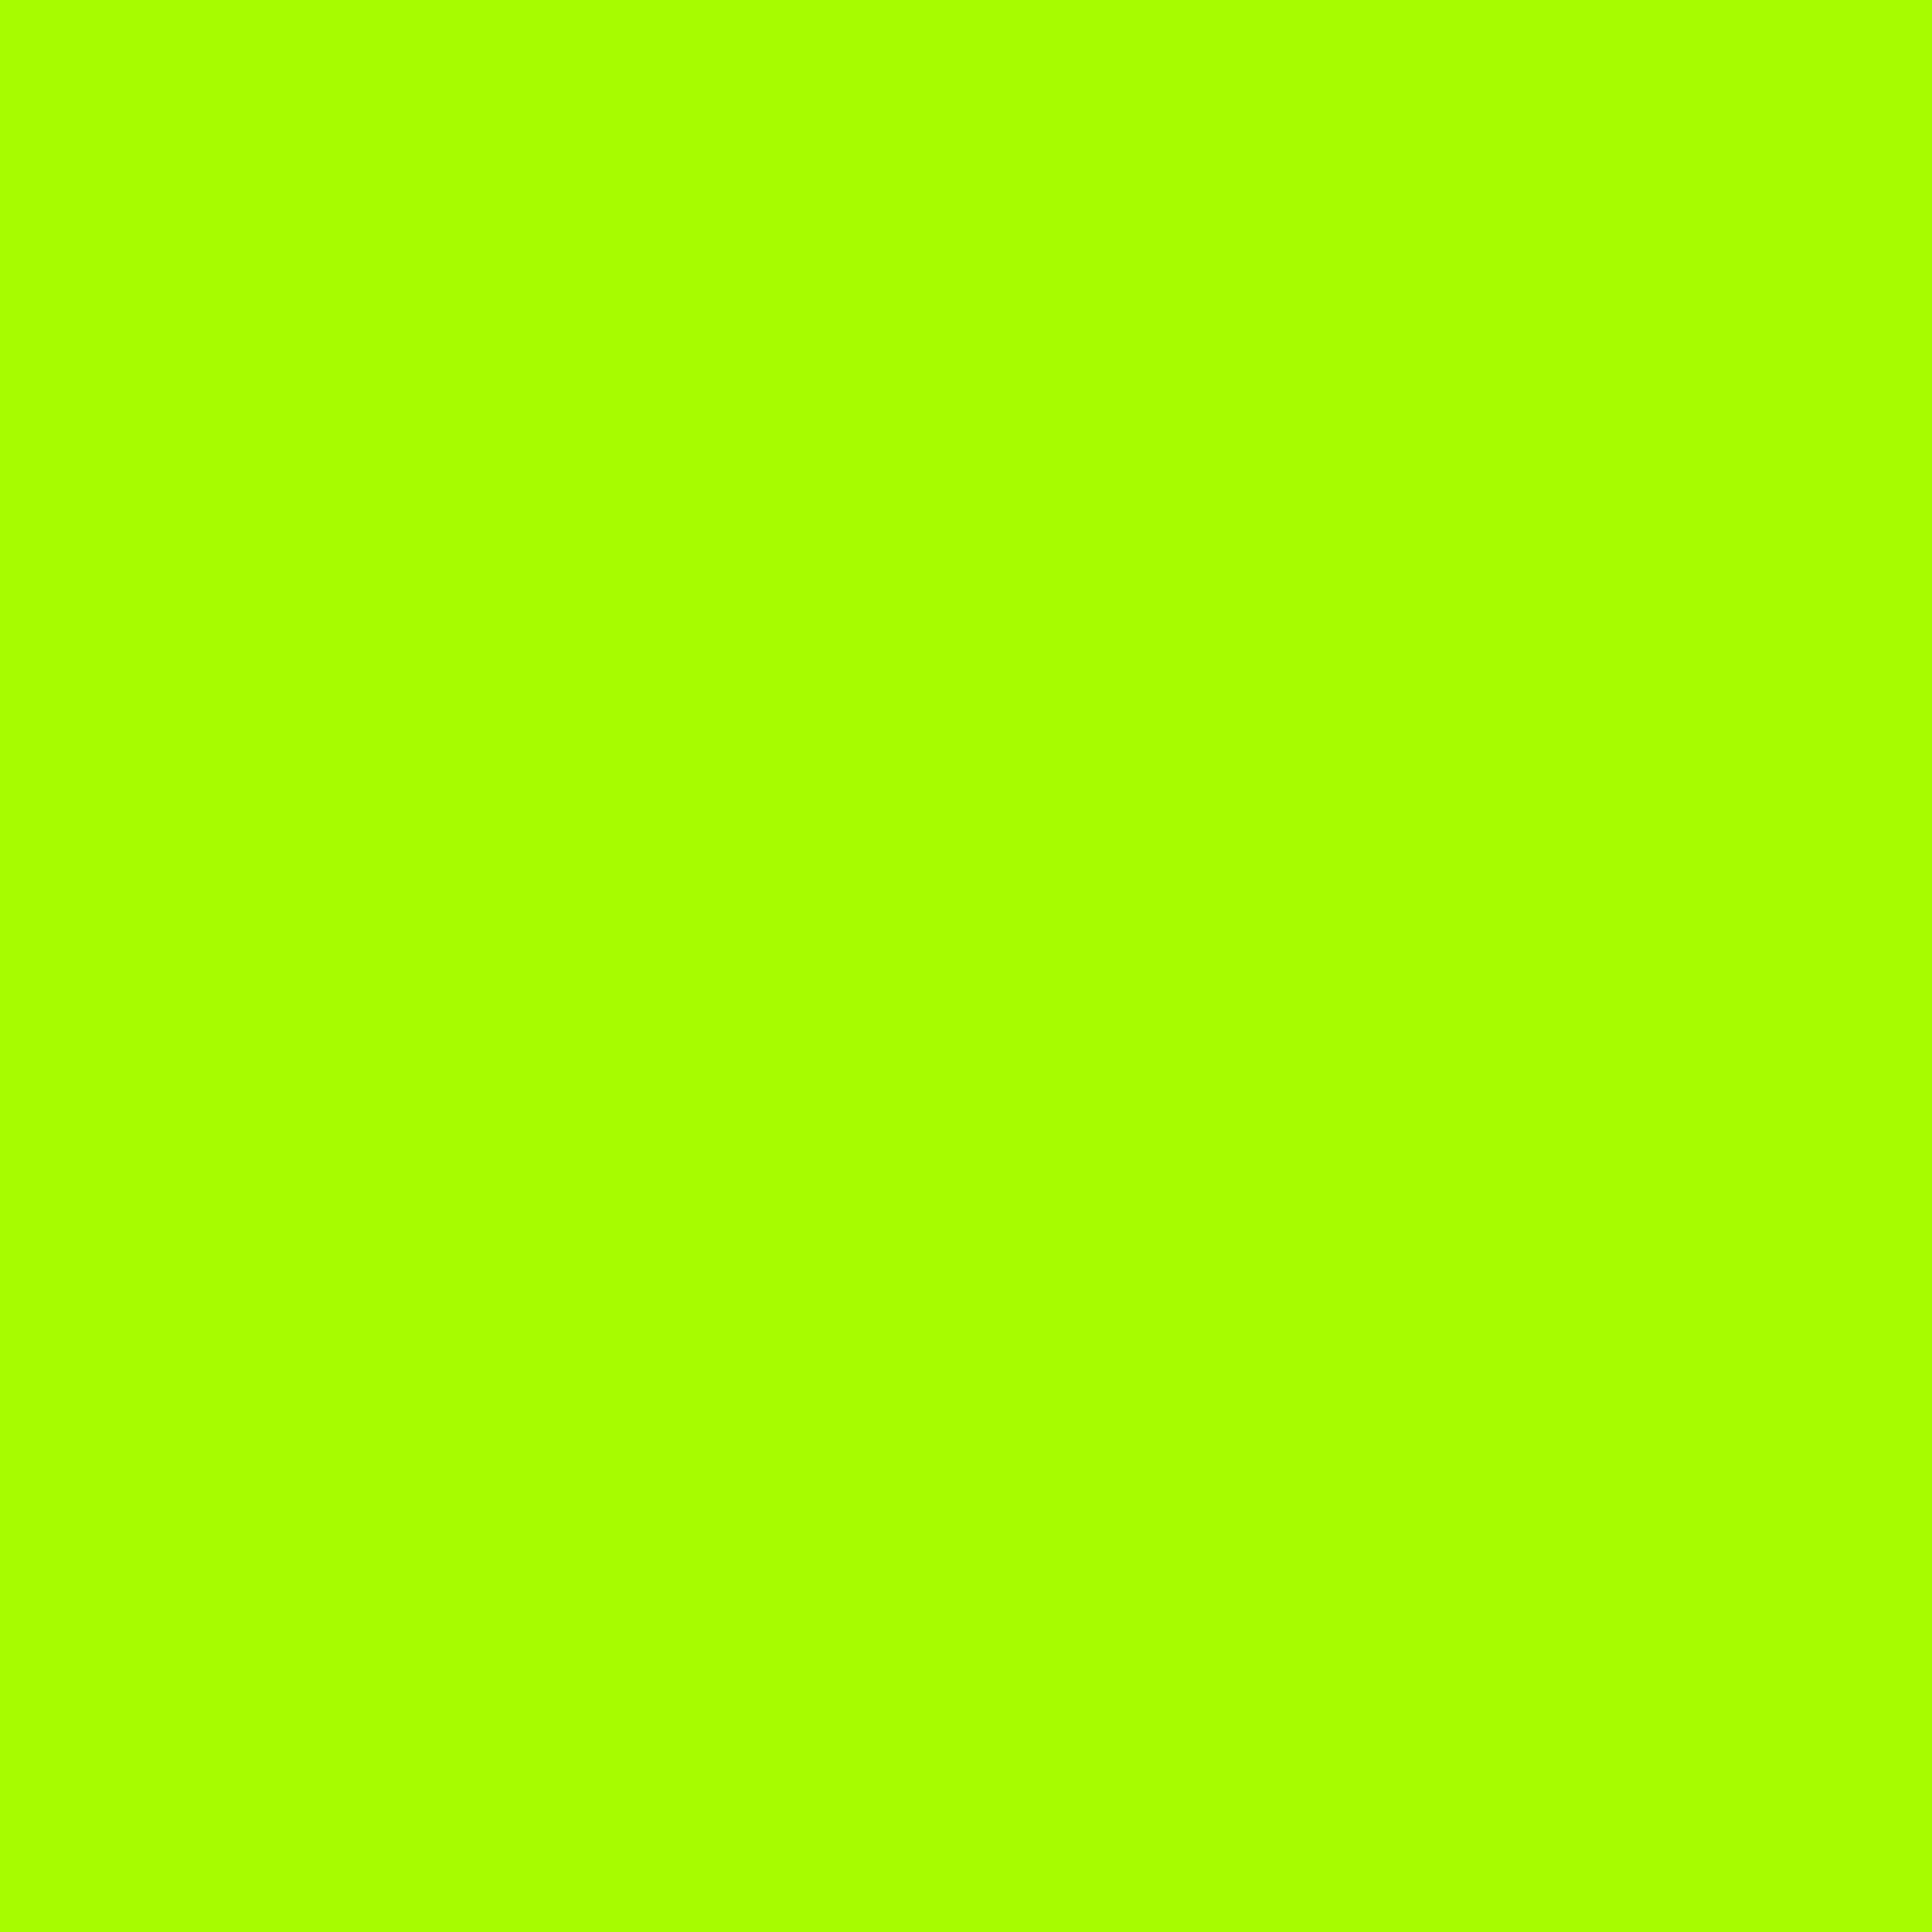 3600x3600 Spring Bud Solid Color Background